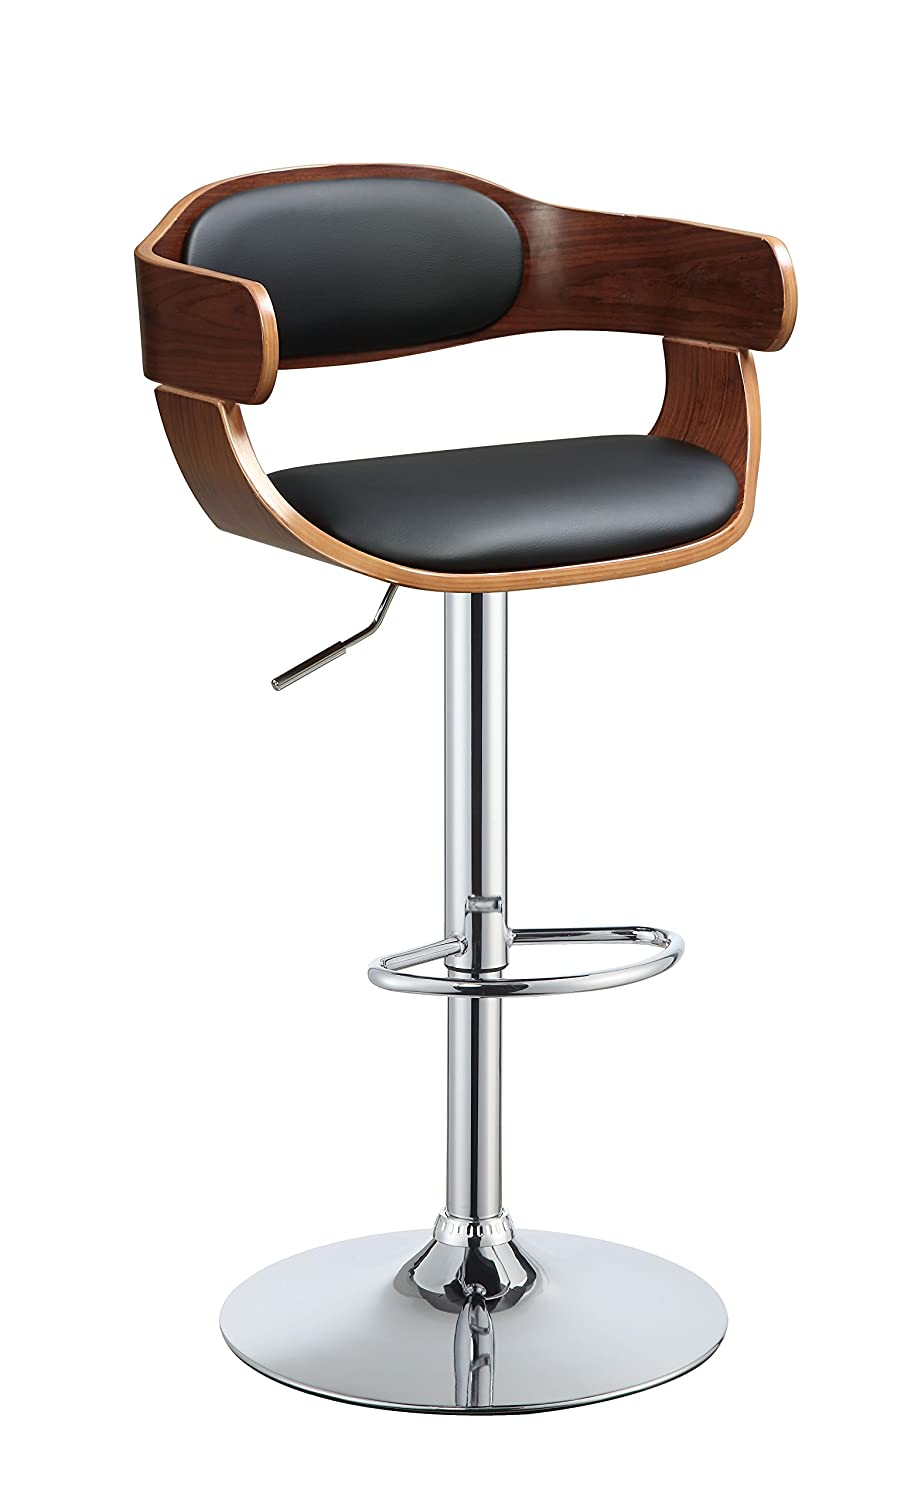 Major-Q 9092421 White PU Walnut Finish Swivel Adjustable Stool